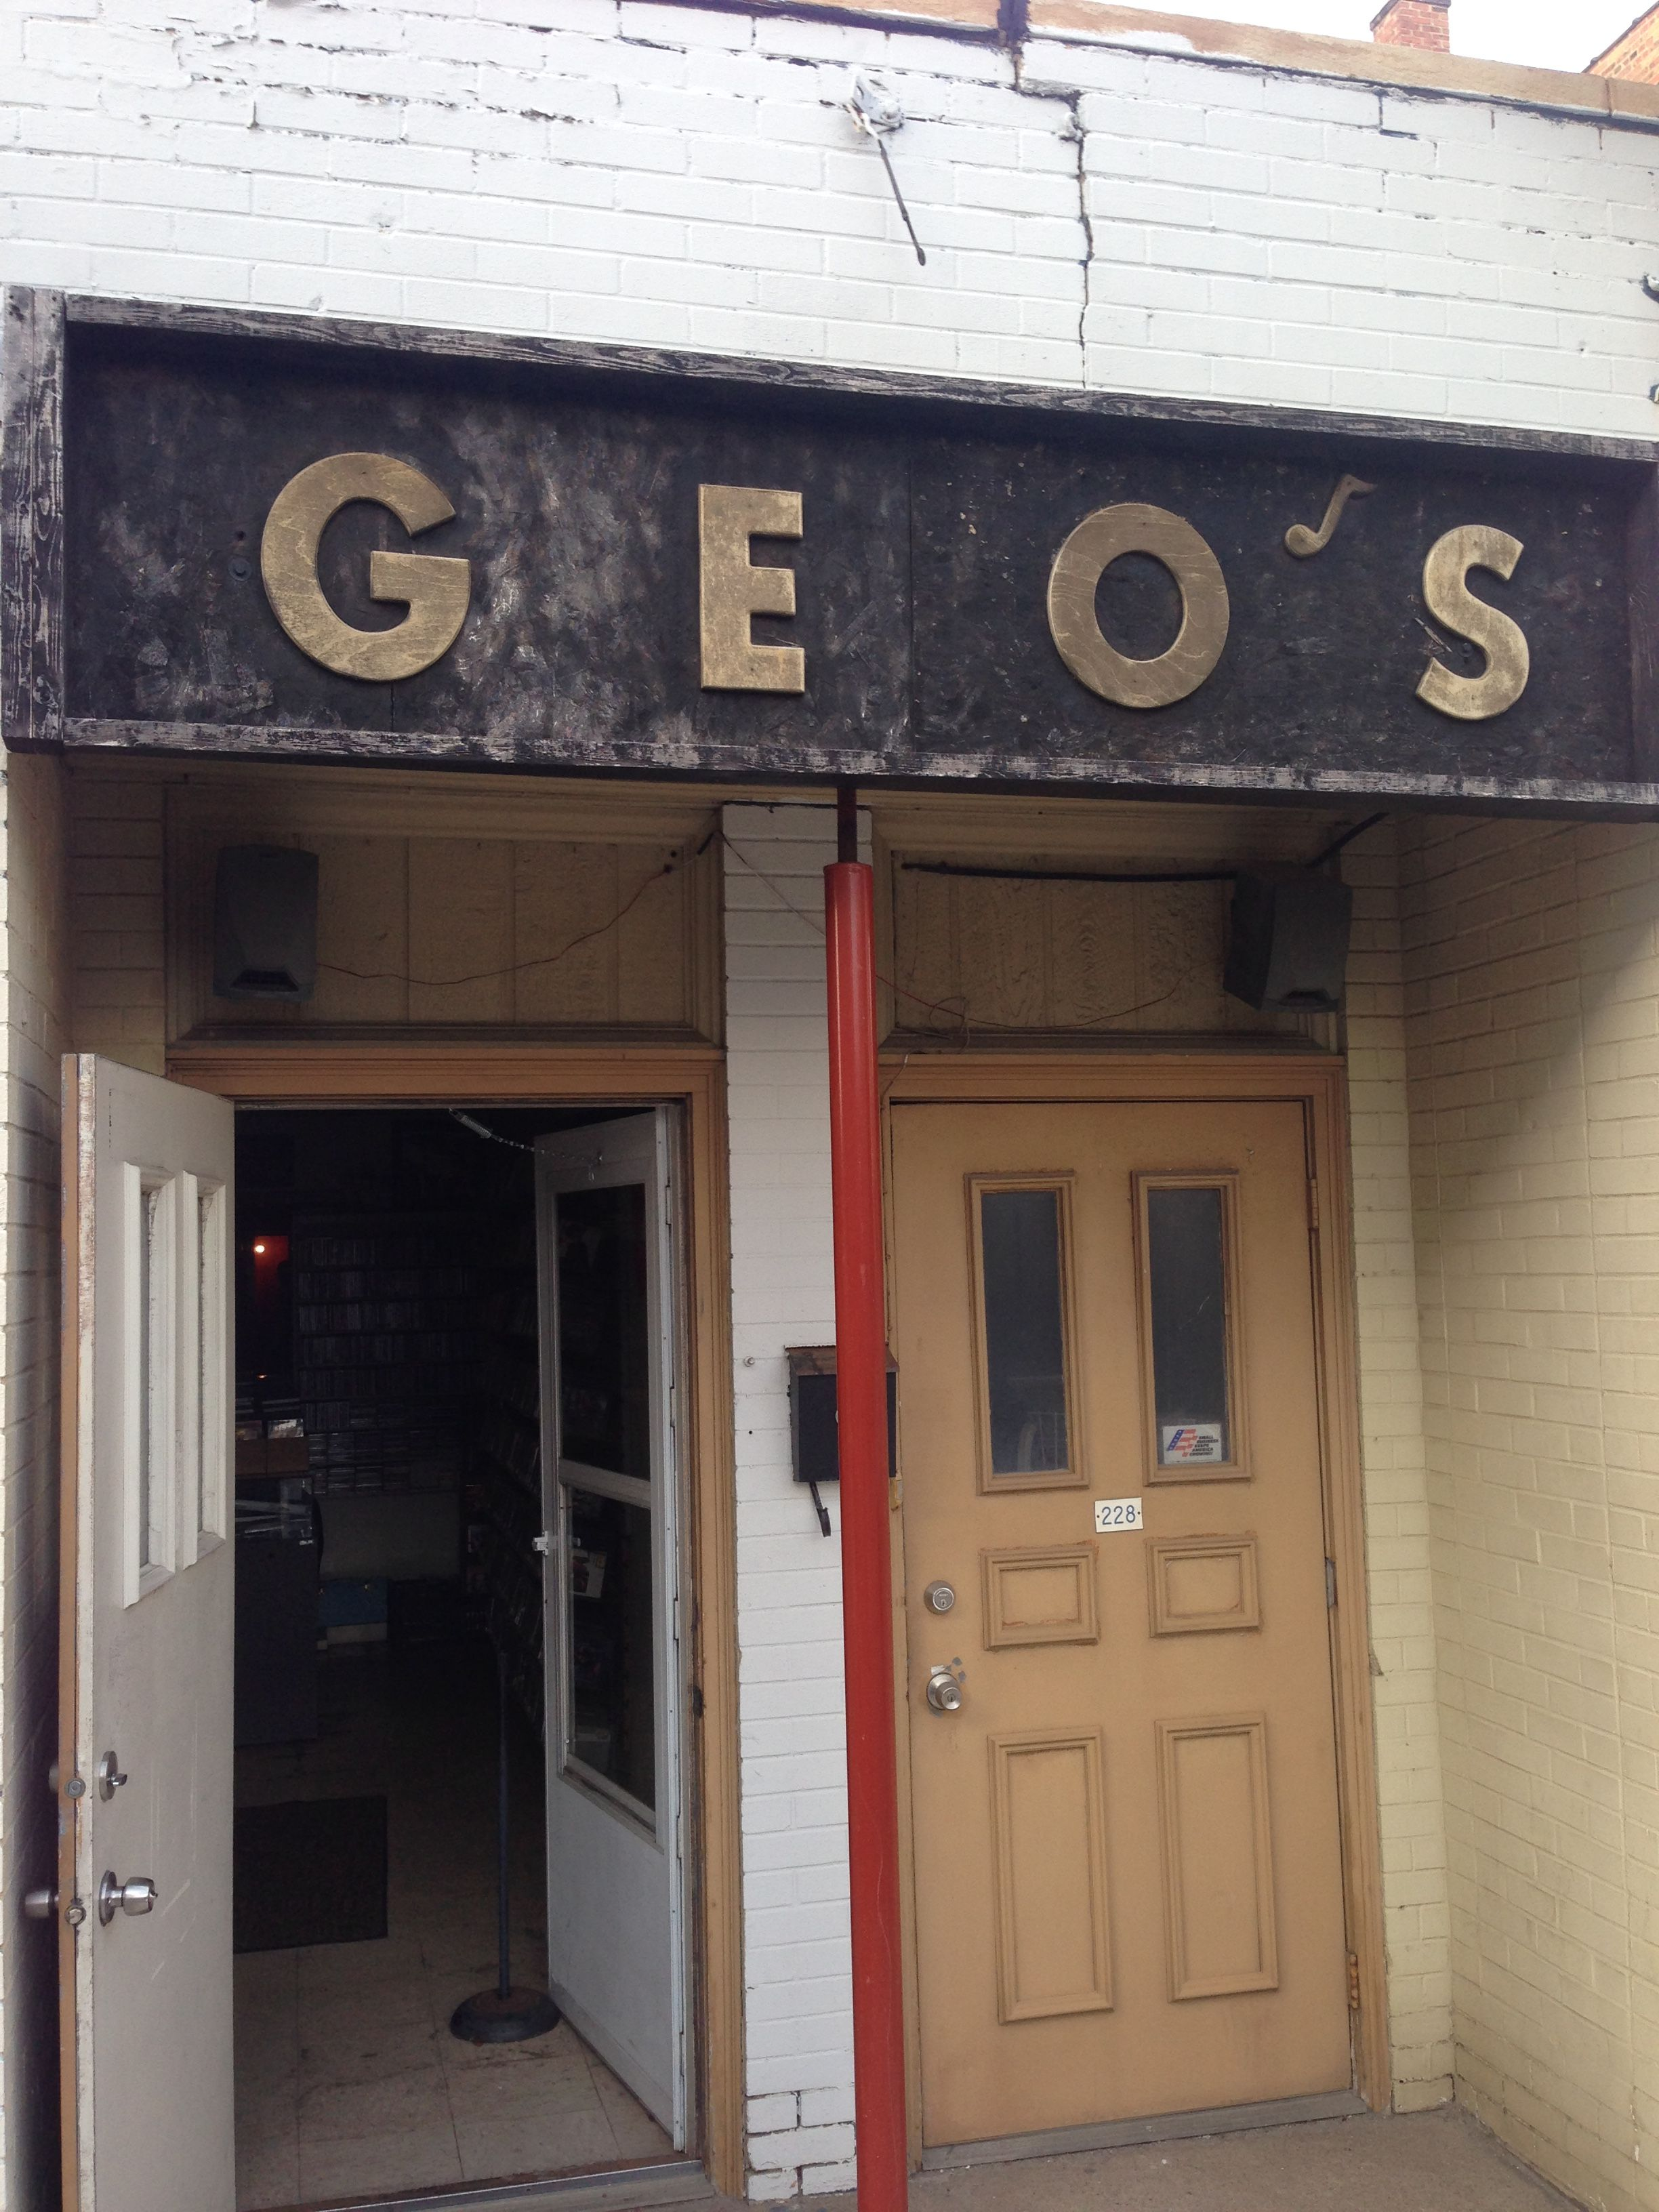 Geo S Record Store Youngstown Ohio Looks Like A Dump From The Exterior But Filled With A Vg Selection Of Lps Record Store Vinyl Music Youngstown